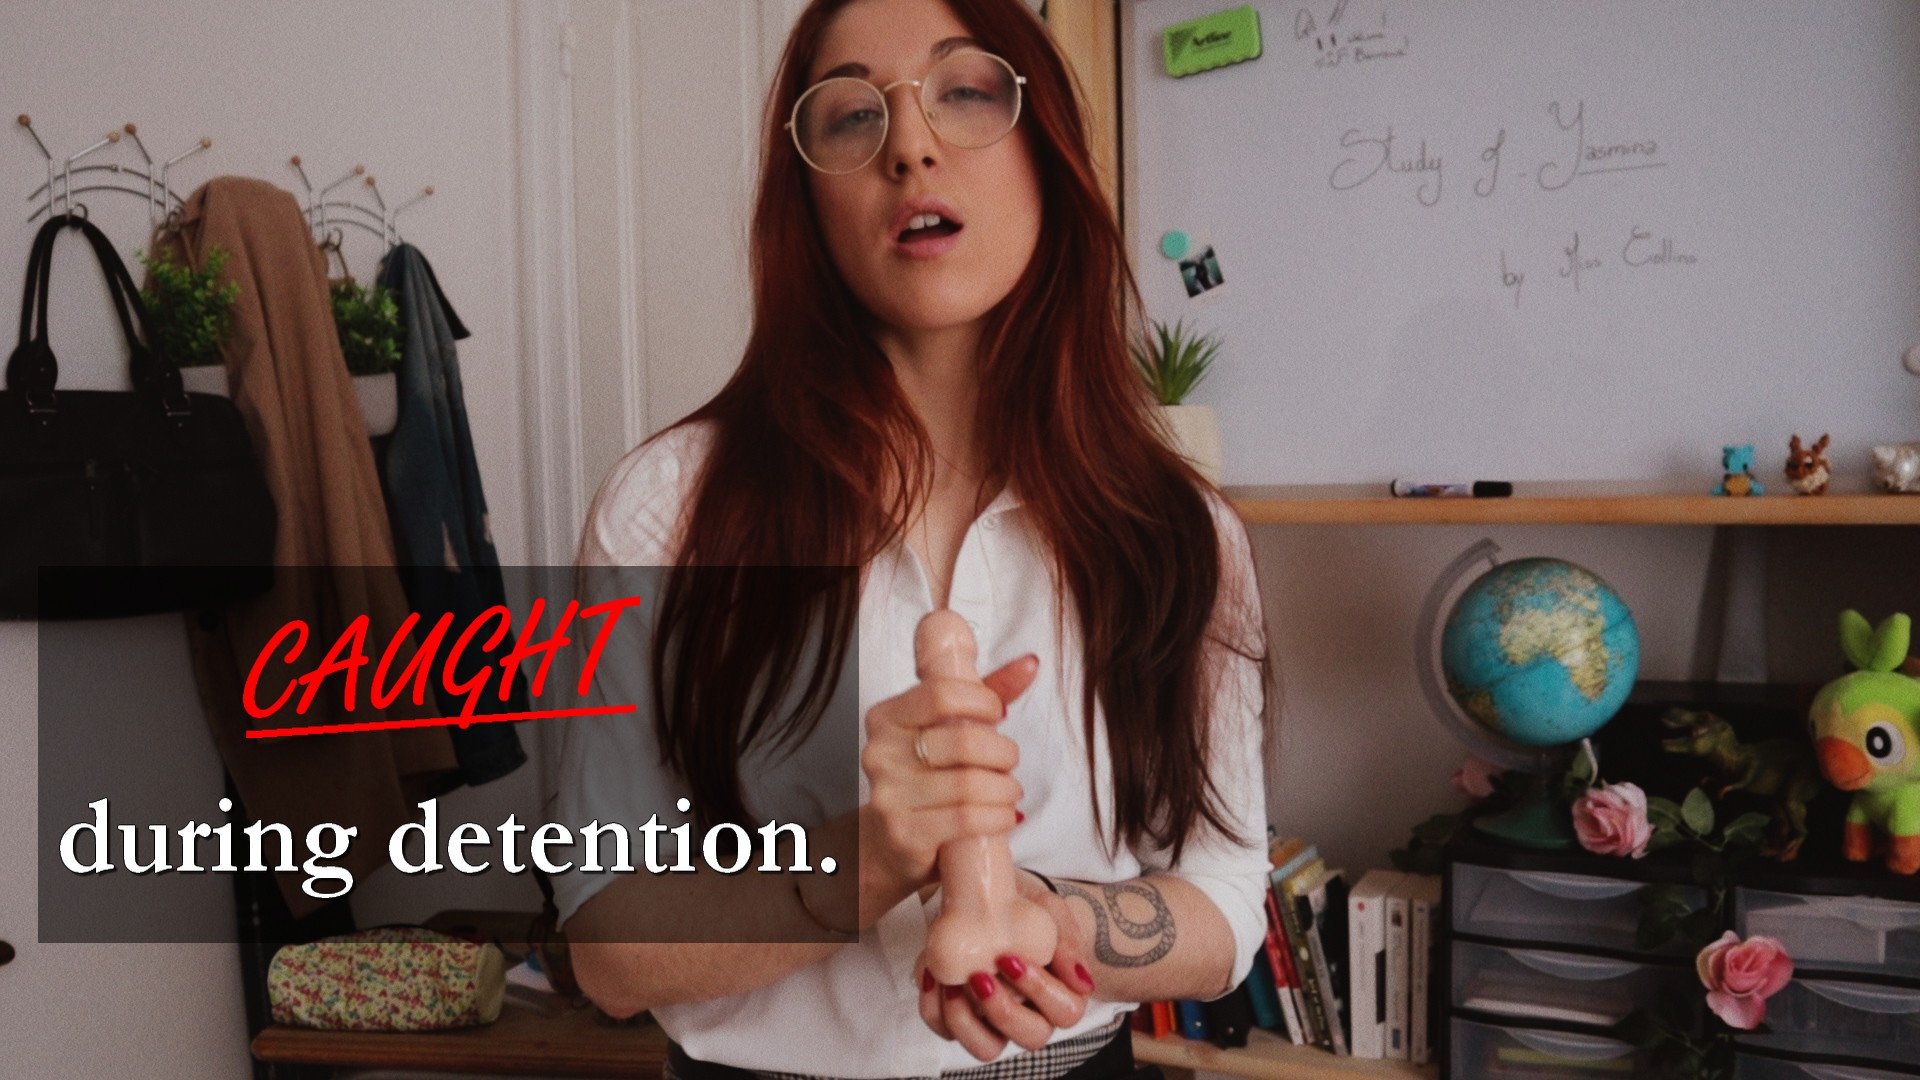 TEACHER JOI - Caught During Detention.